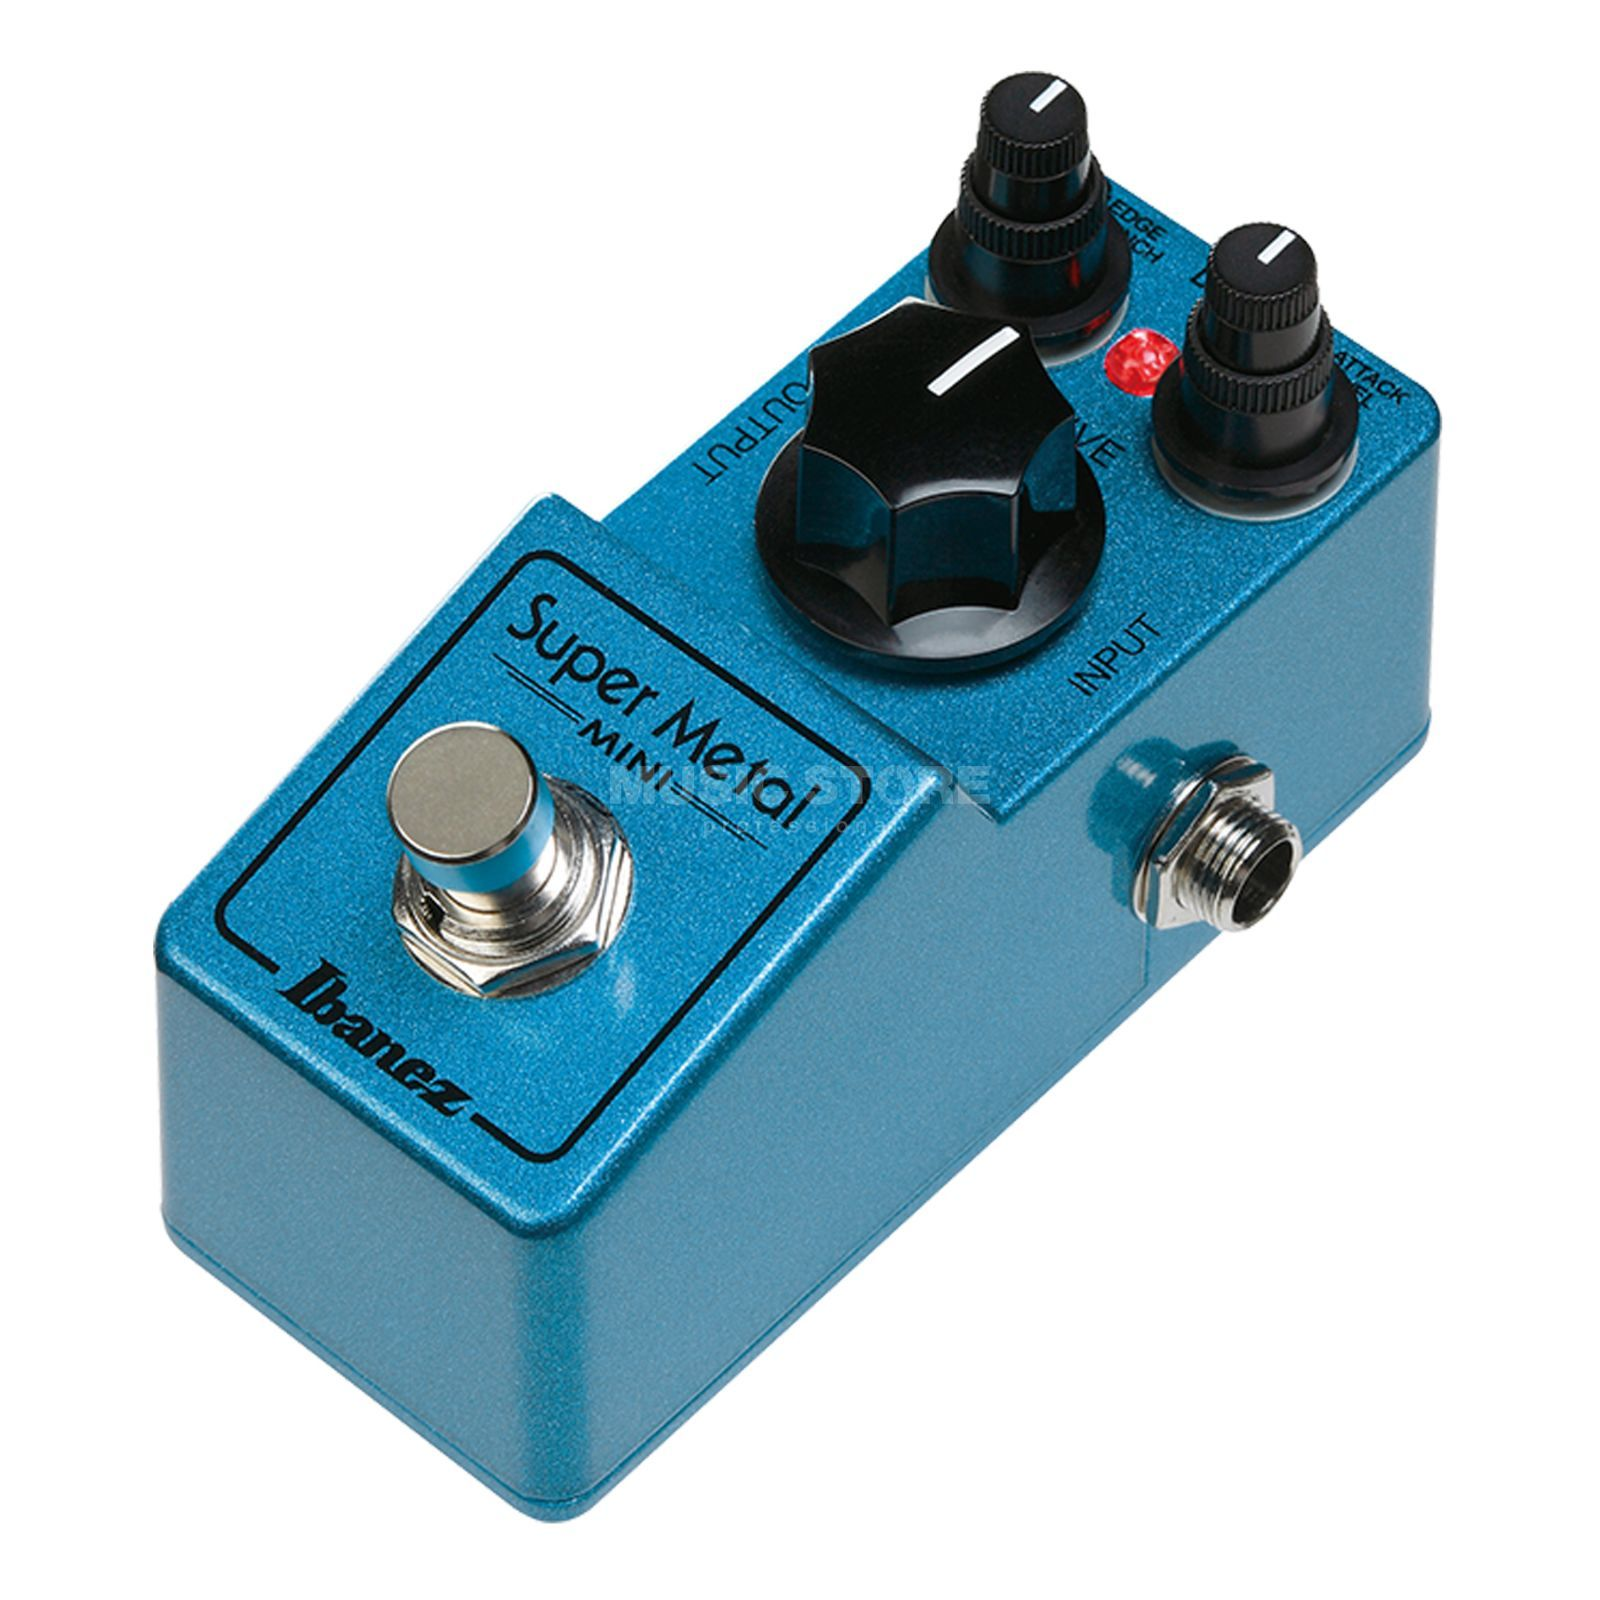 Ibanez SM Mini Super Metal Distortion Product Image